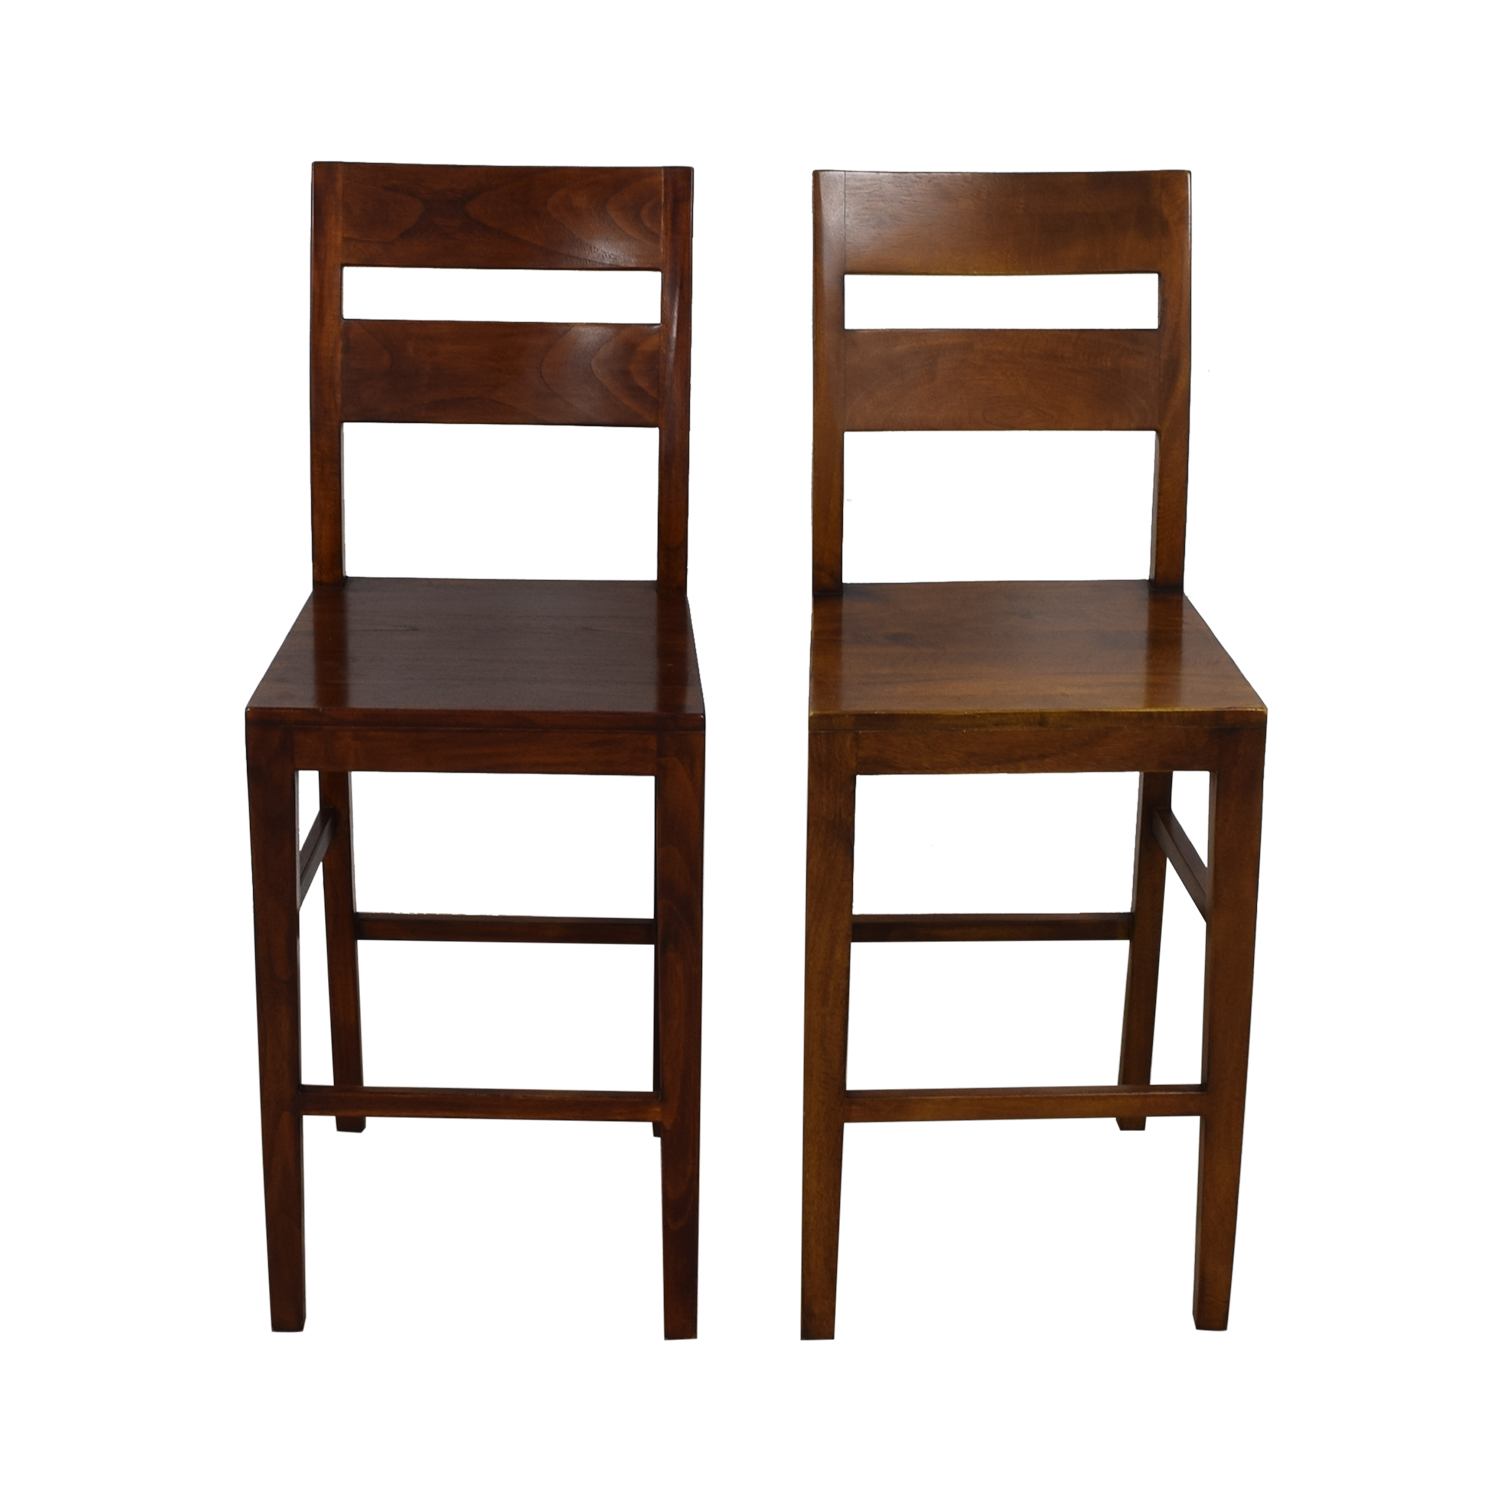 shop Crate & Barrel Counter Breakfast Bar Stools Crate & Barrel Chairs